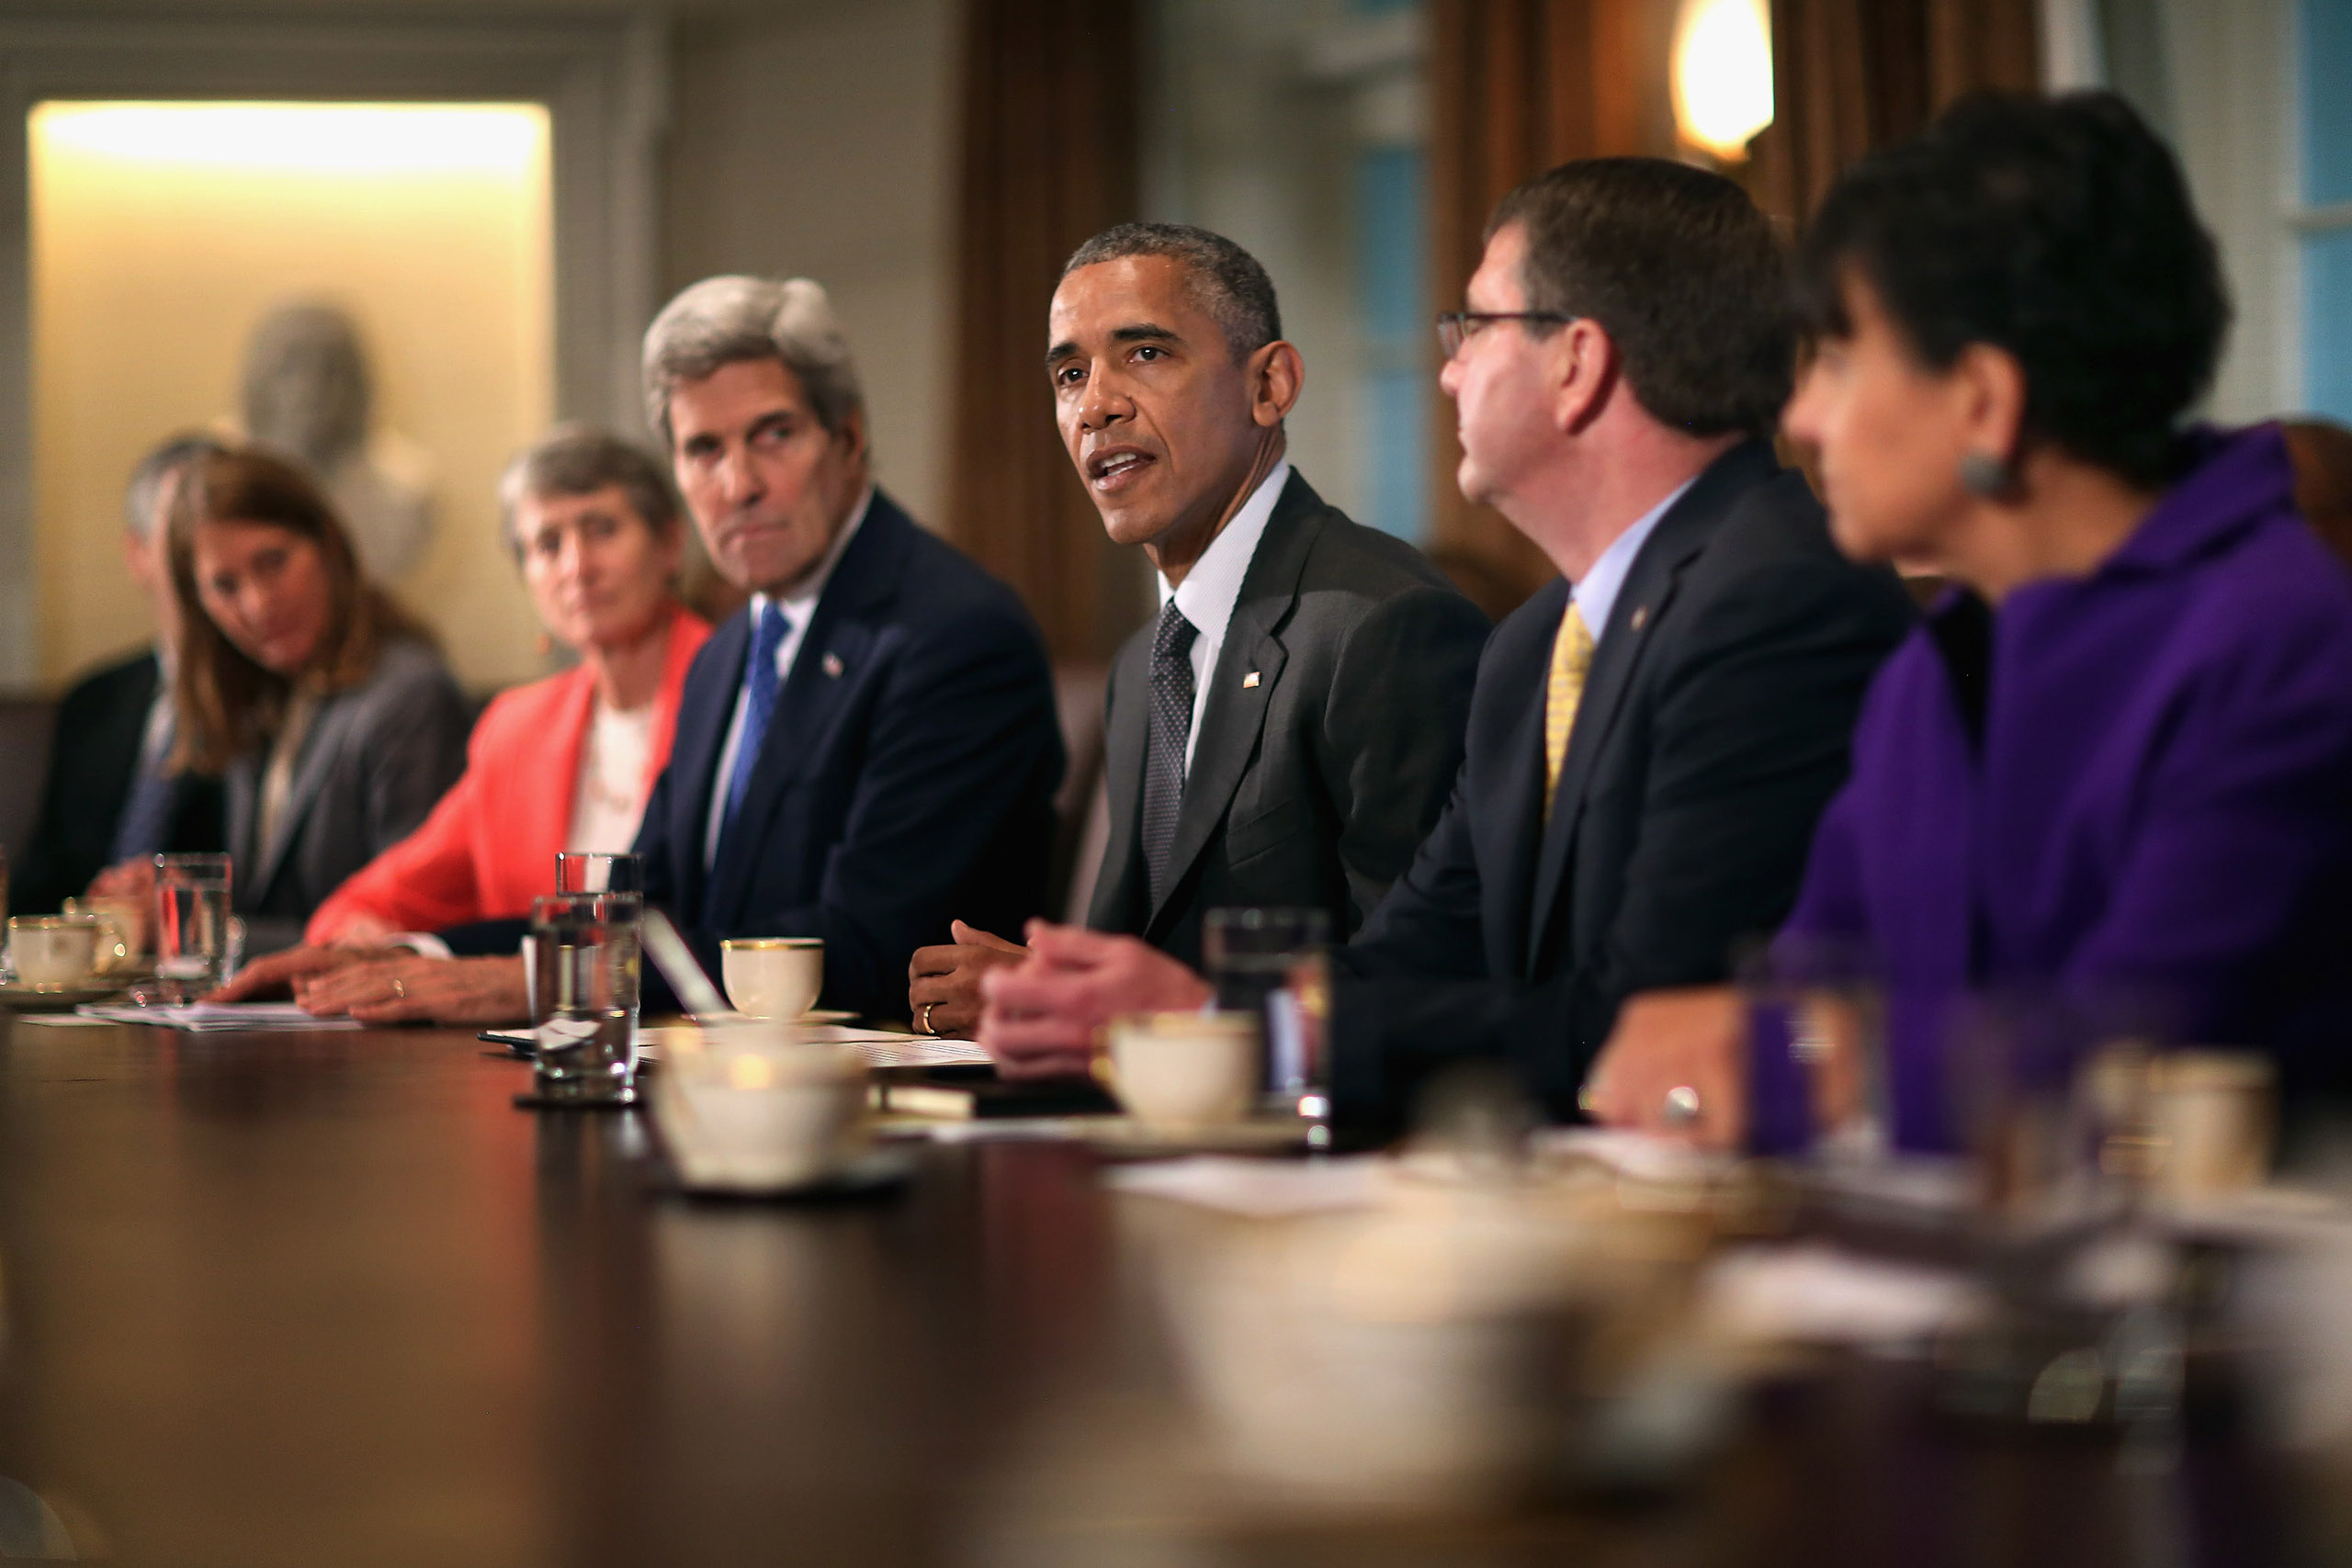 Obama makes a brief statement to the news media during a meeting with his cabinet at the White House on May 21, 2015.